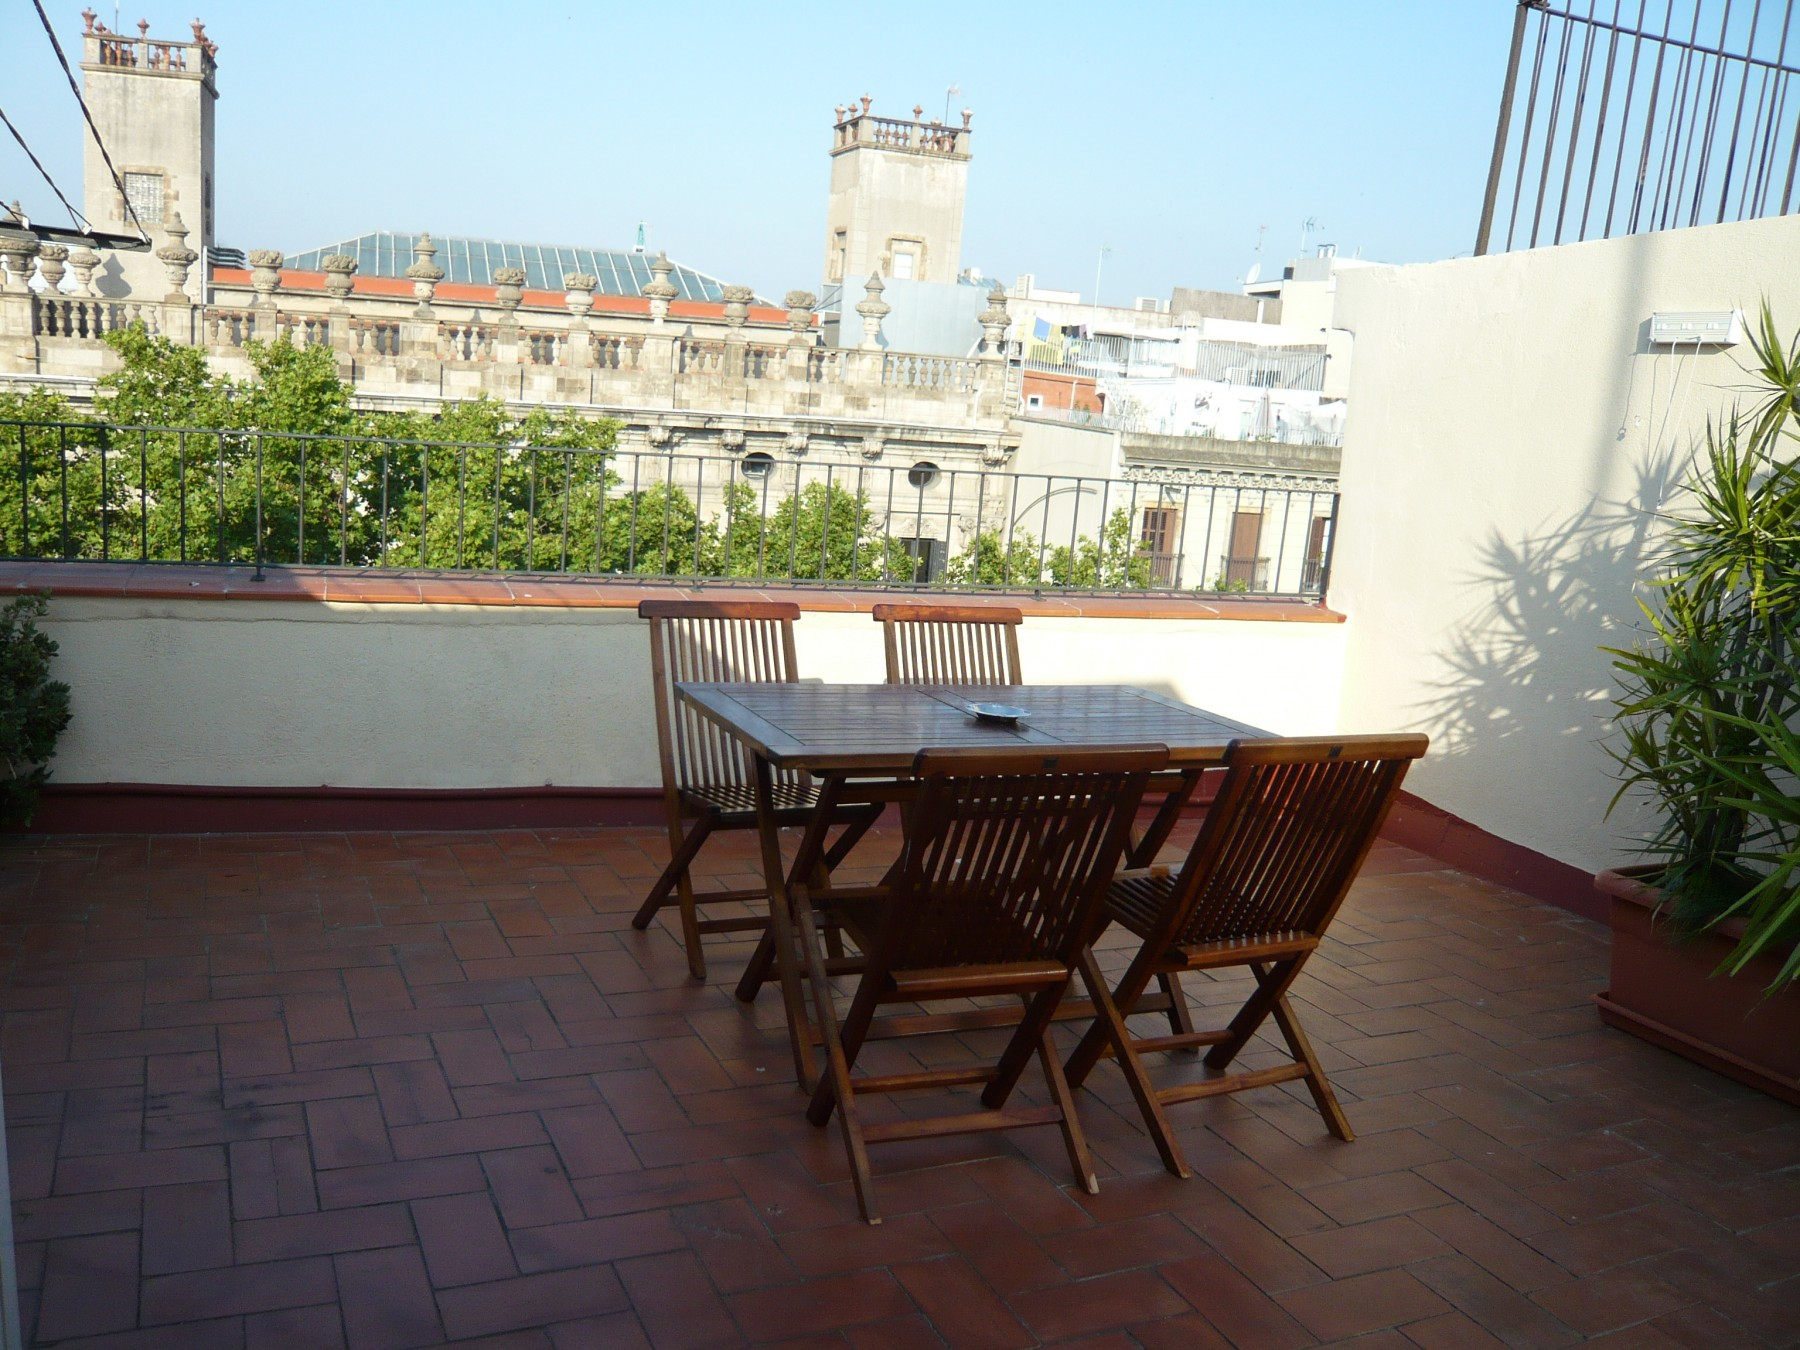 GOTHIC - Balcony & shared terrace apartment - Apartments ...